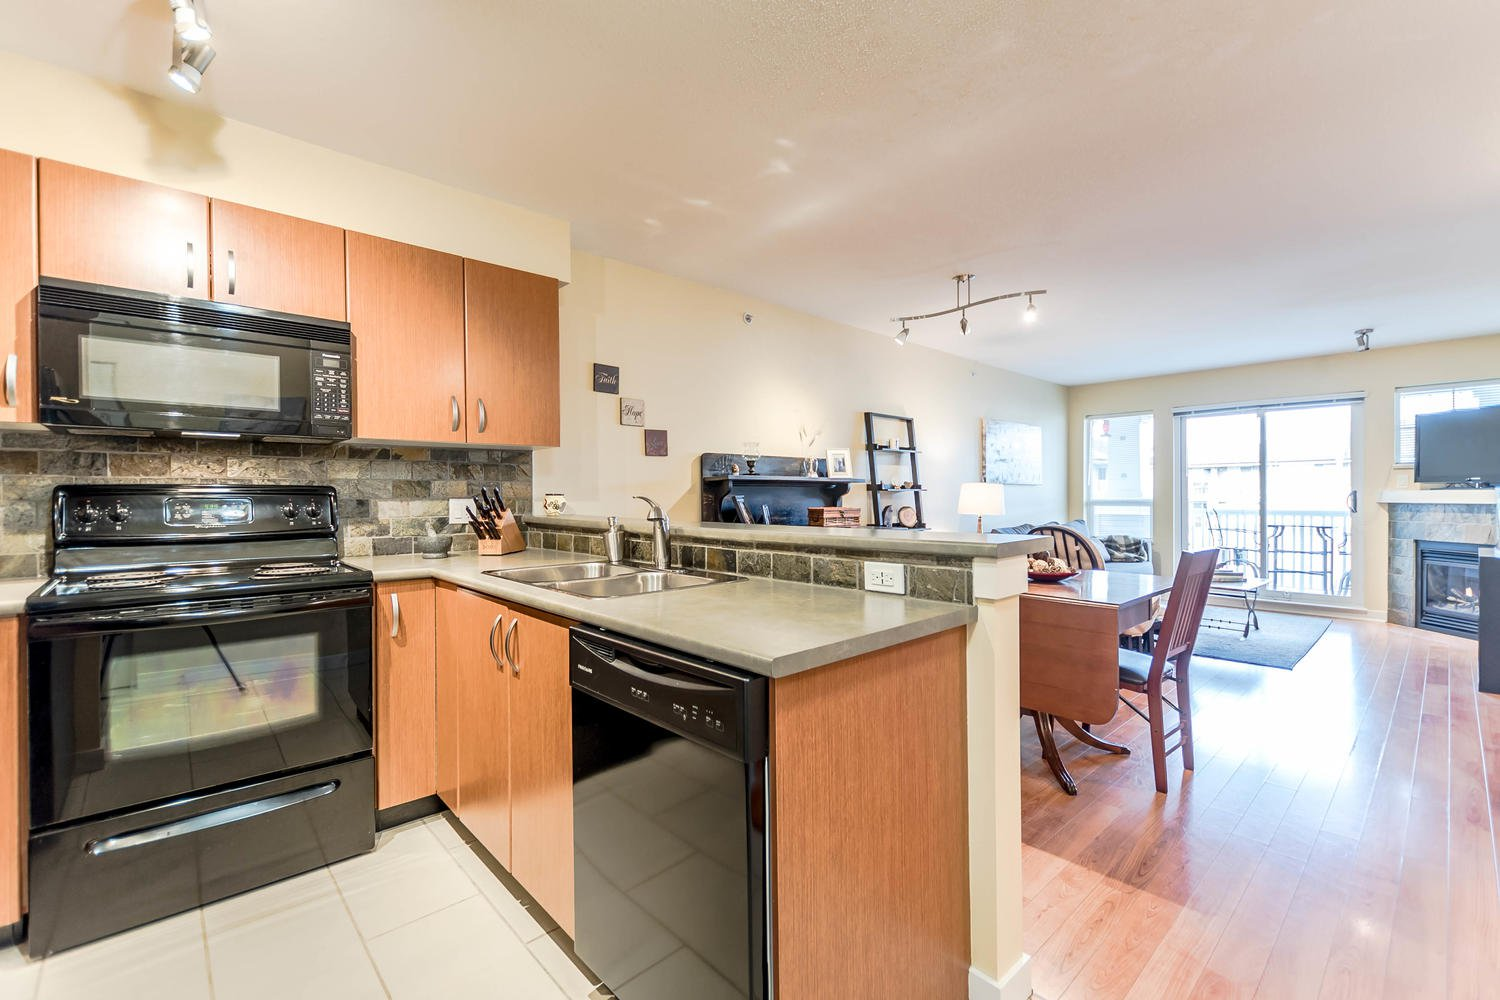 Photo 5: Photos: #408 20750 Duncan Way: Langley City Condo for sale (Langley)  : MLS®# R2221641